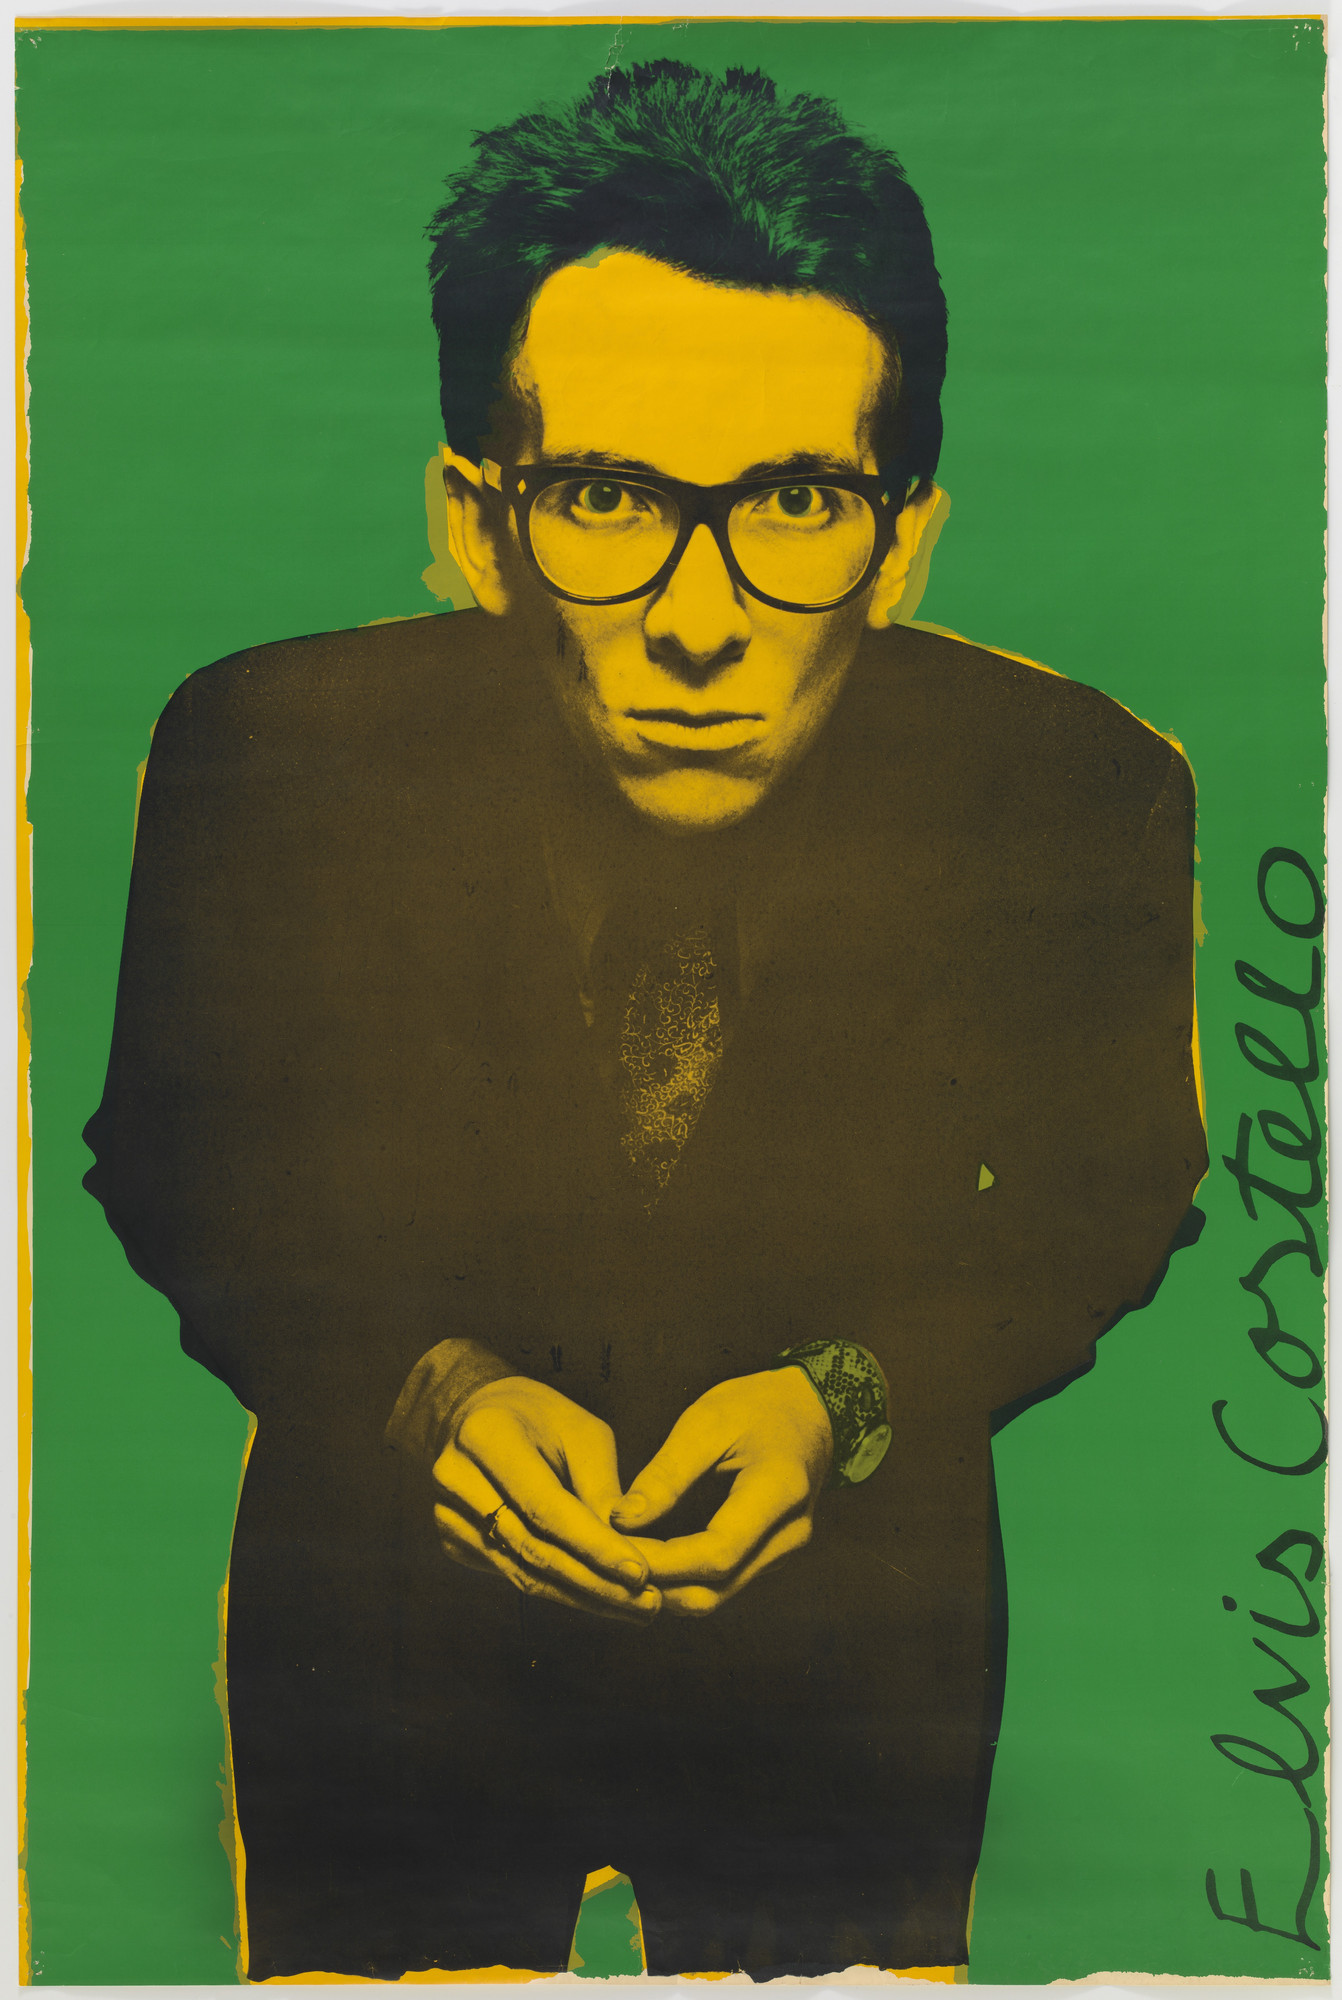 Barney Bubbles (Colin Fulcher), Chris Gabrin. Elvis Costello, Stiff Records. 1977